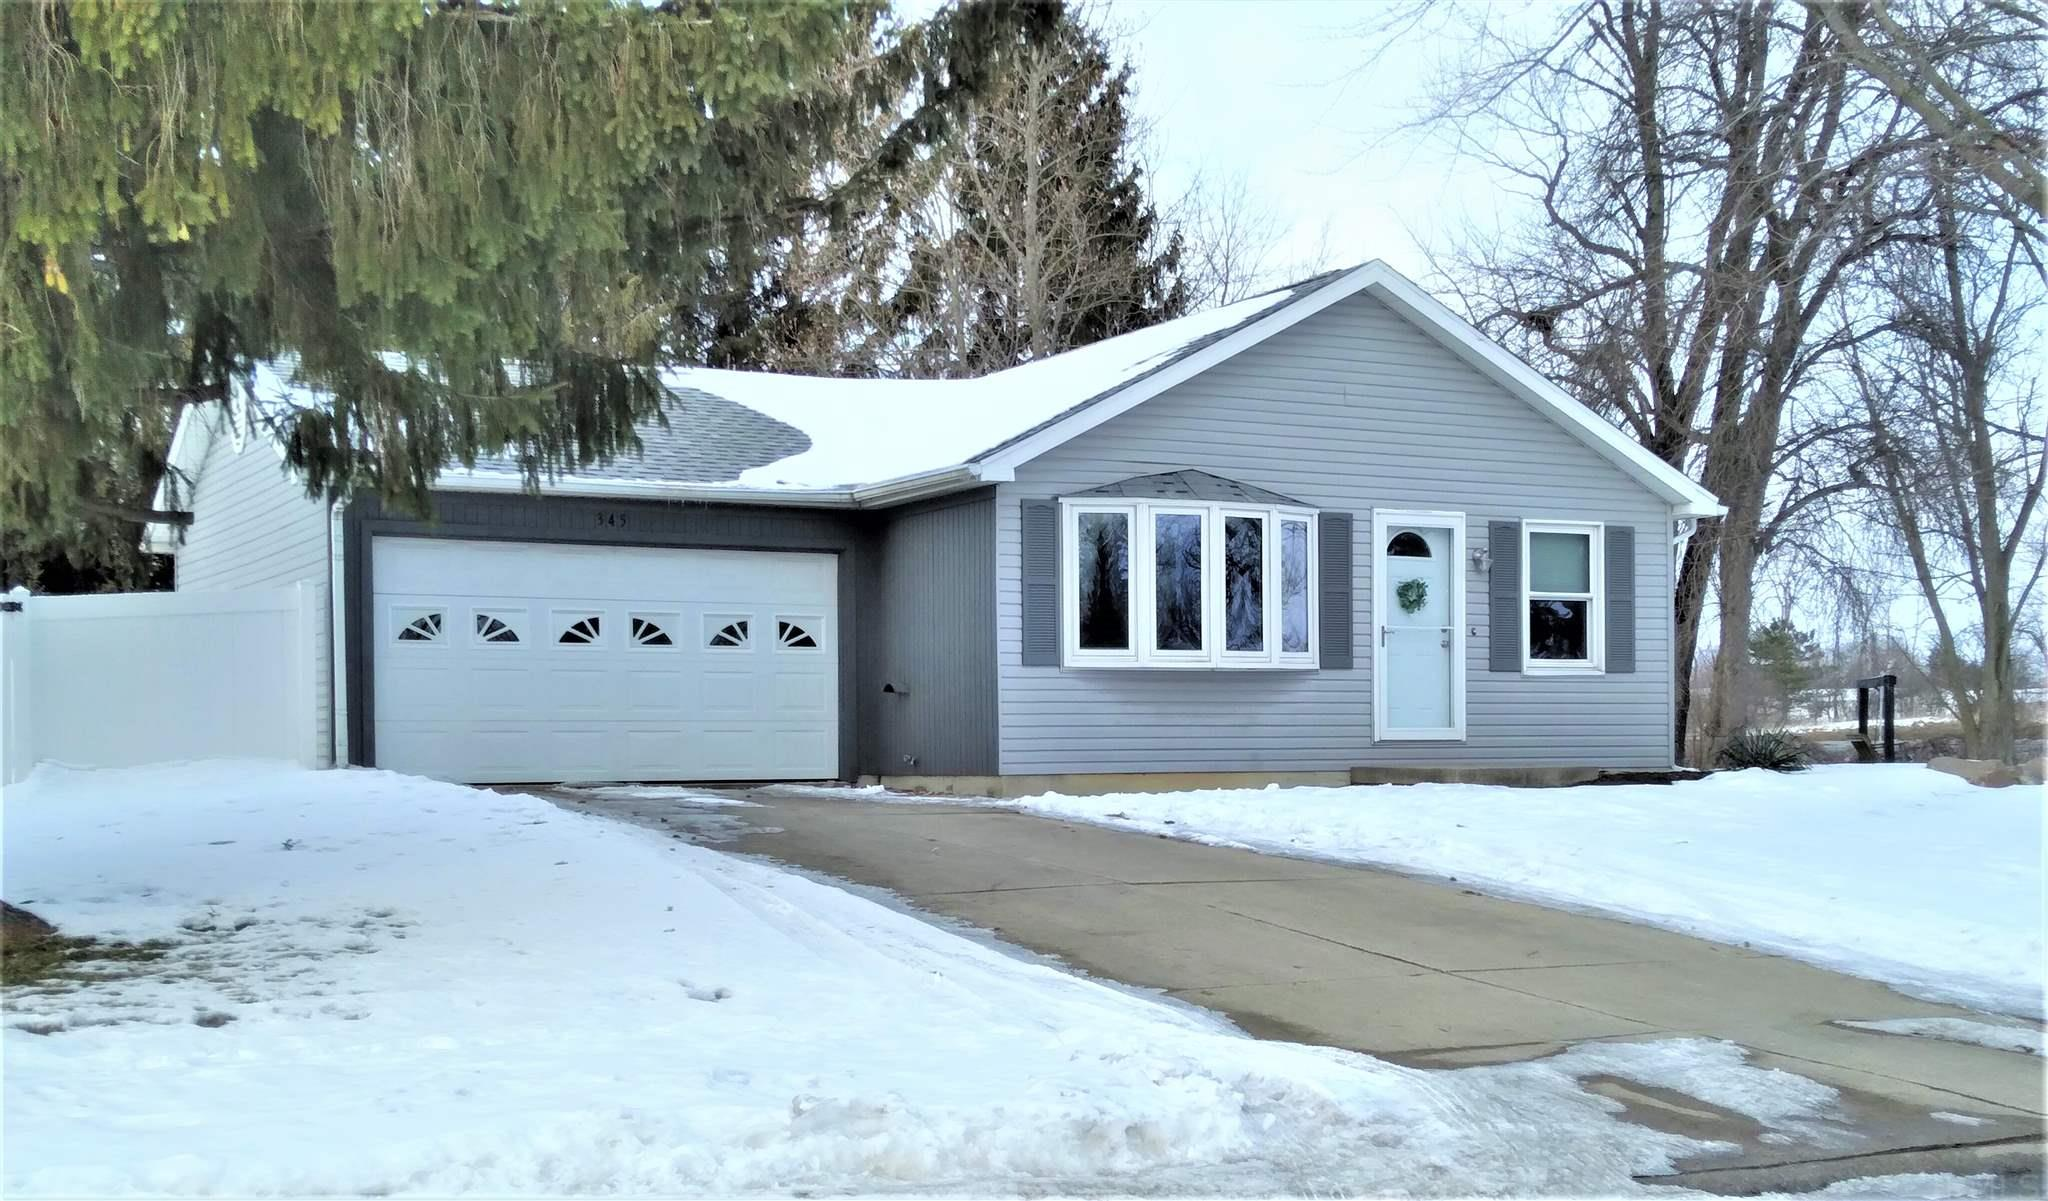 This house is move-in ready.  Roof, doors, windows, countertops, flooring, appliances installed spring of 2018.  Washer and dryer stay but are not new.  Three bedroom, large living room, eat in kitchen, one bath, 1/2 bath off utility room.  Attached, over-sized one car garage and a great privacy fenced in back yard.  Mayor's community park next door.  It's a way but you can walk to Morsches Park for ball parks, trails, playgrounds and community activities.  A great neighborhood to live in.  A great starter home.